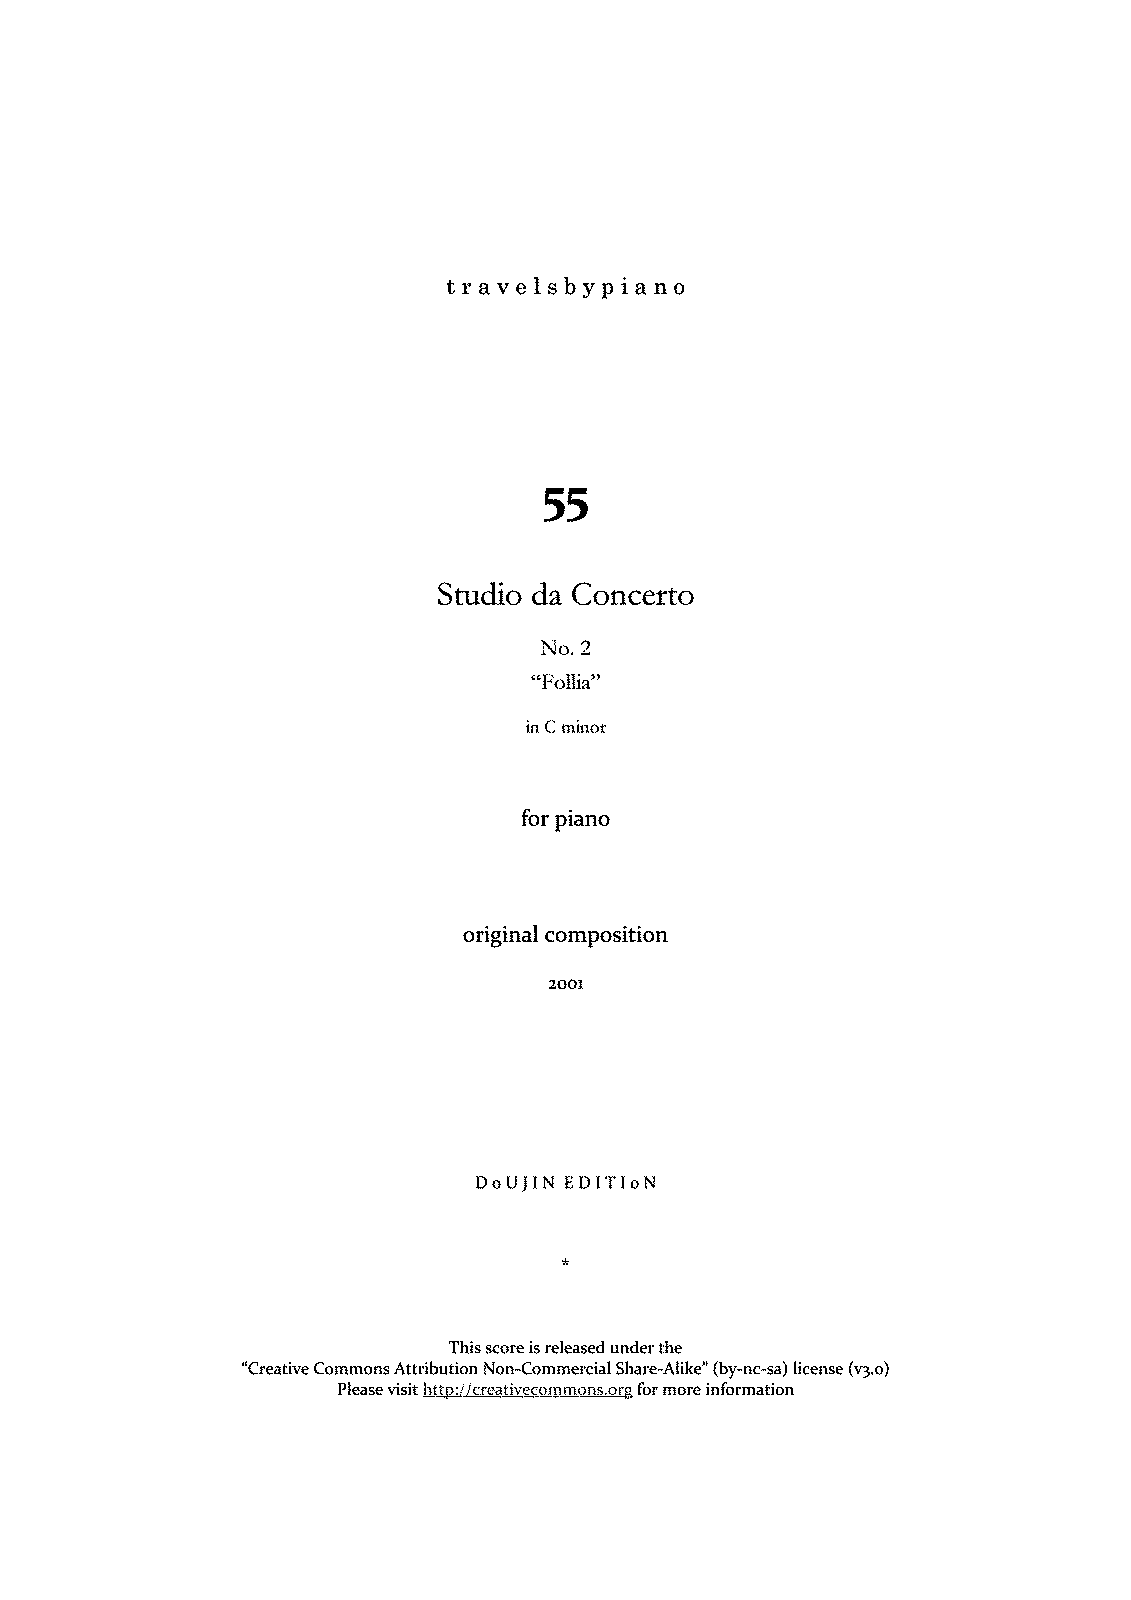 PMLP365966--travelsbypiano- tbp55 Studio da Concerto No.2 in C minor -09A175EB-.pdf